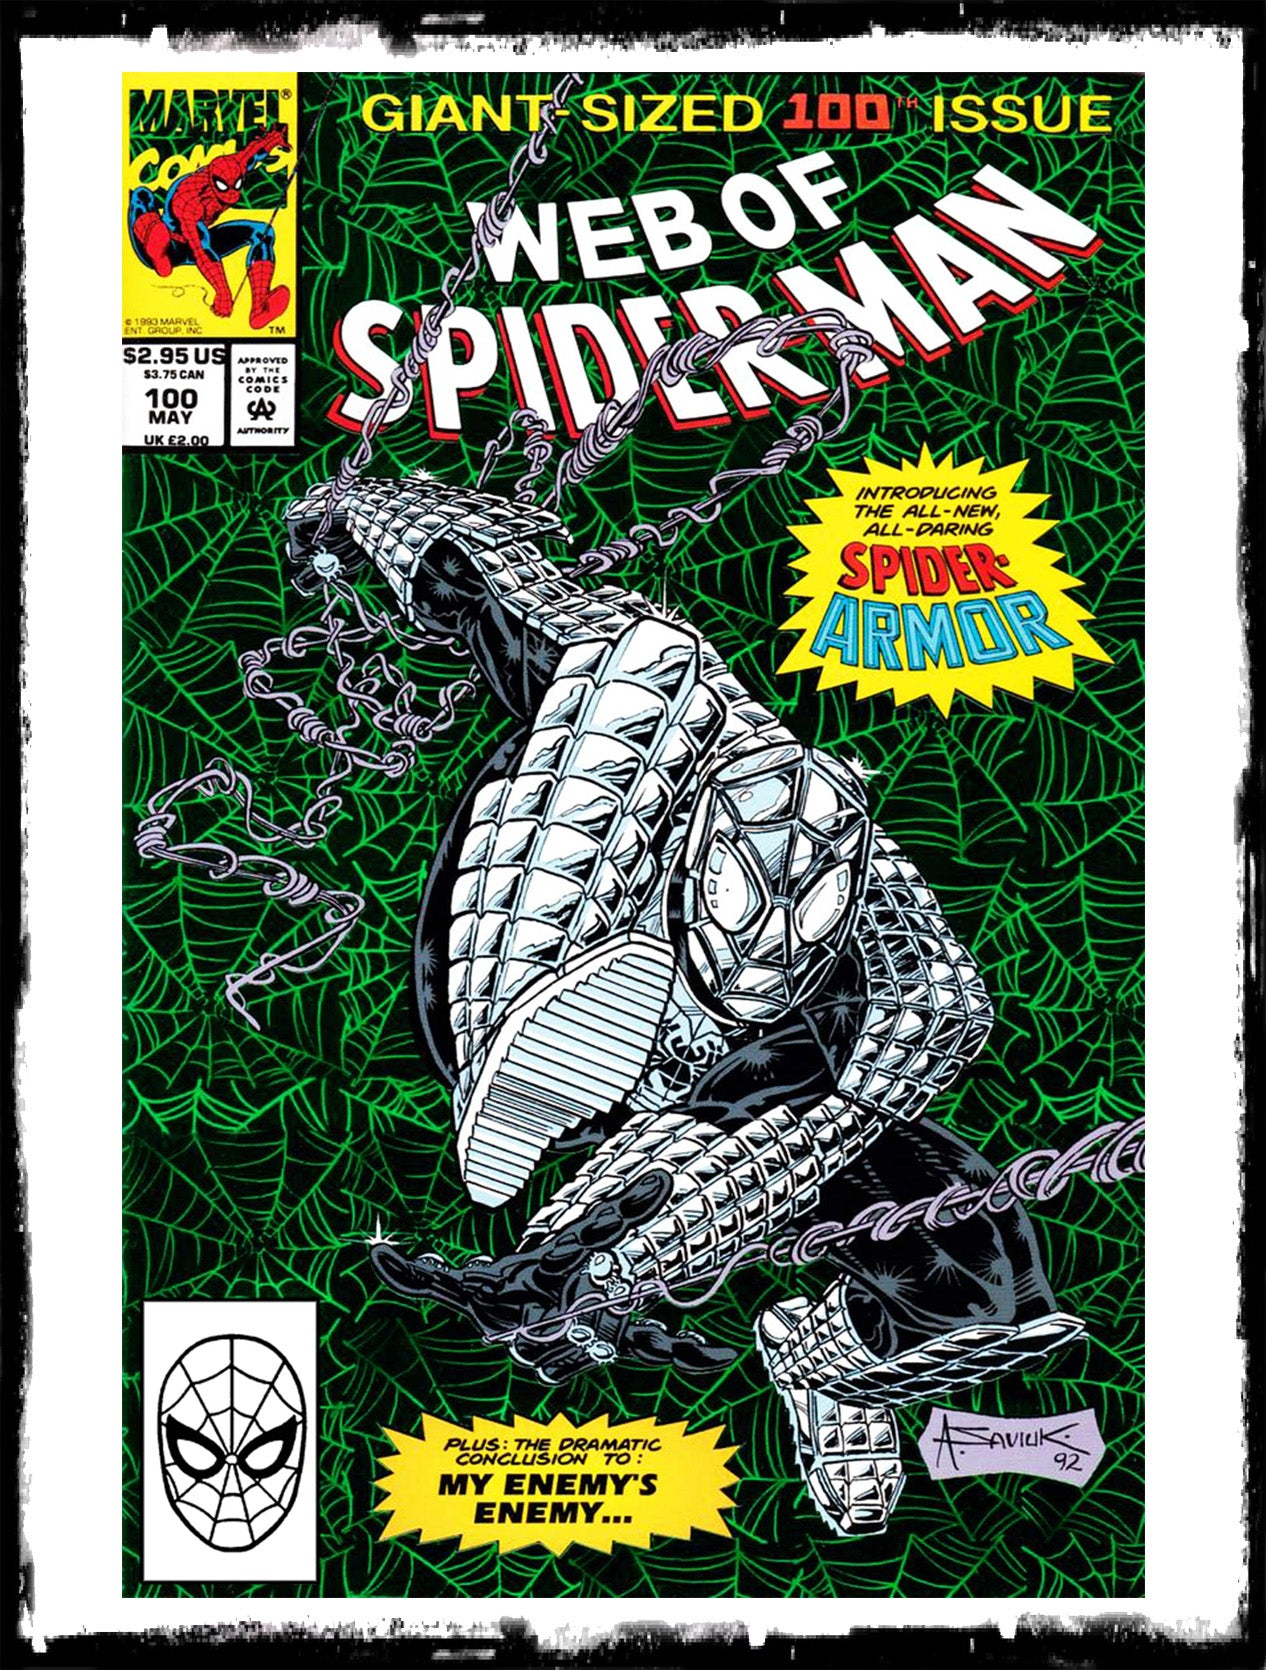 WEB OF SPIDER-MAN - #100 1ST APP OF SPIDER-ARMOR GREEN FOIL (1993 - NM)